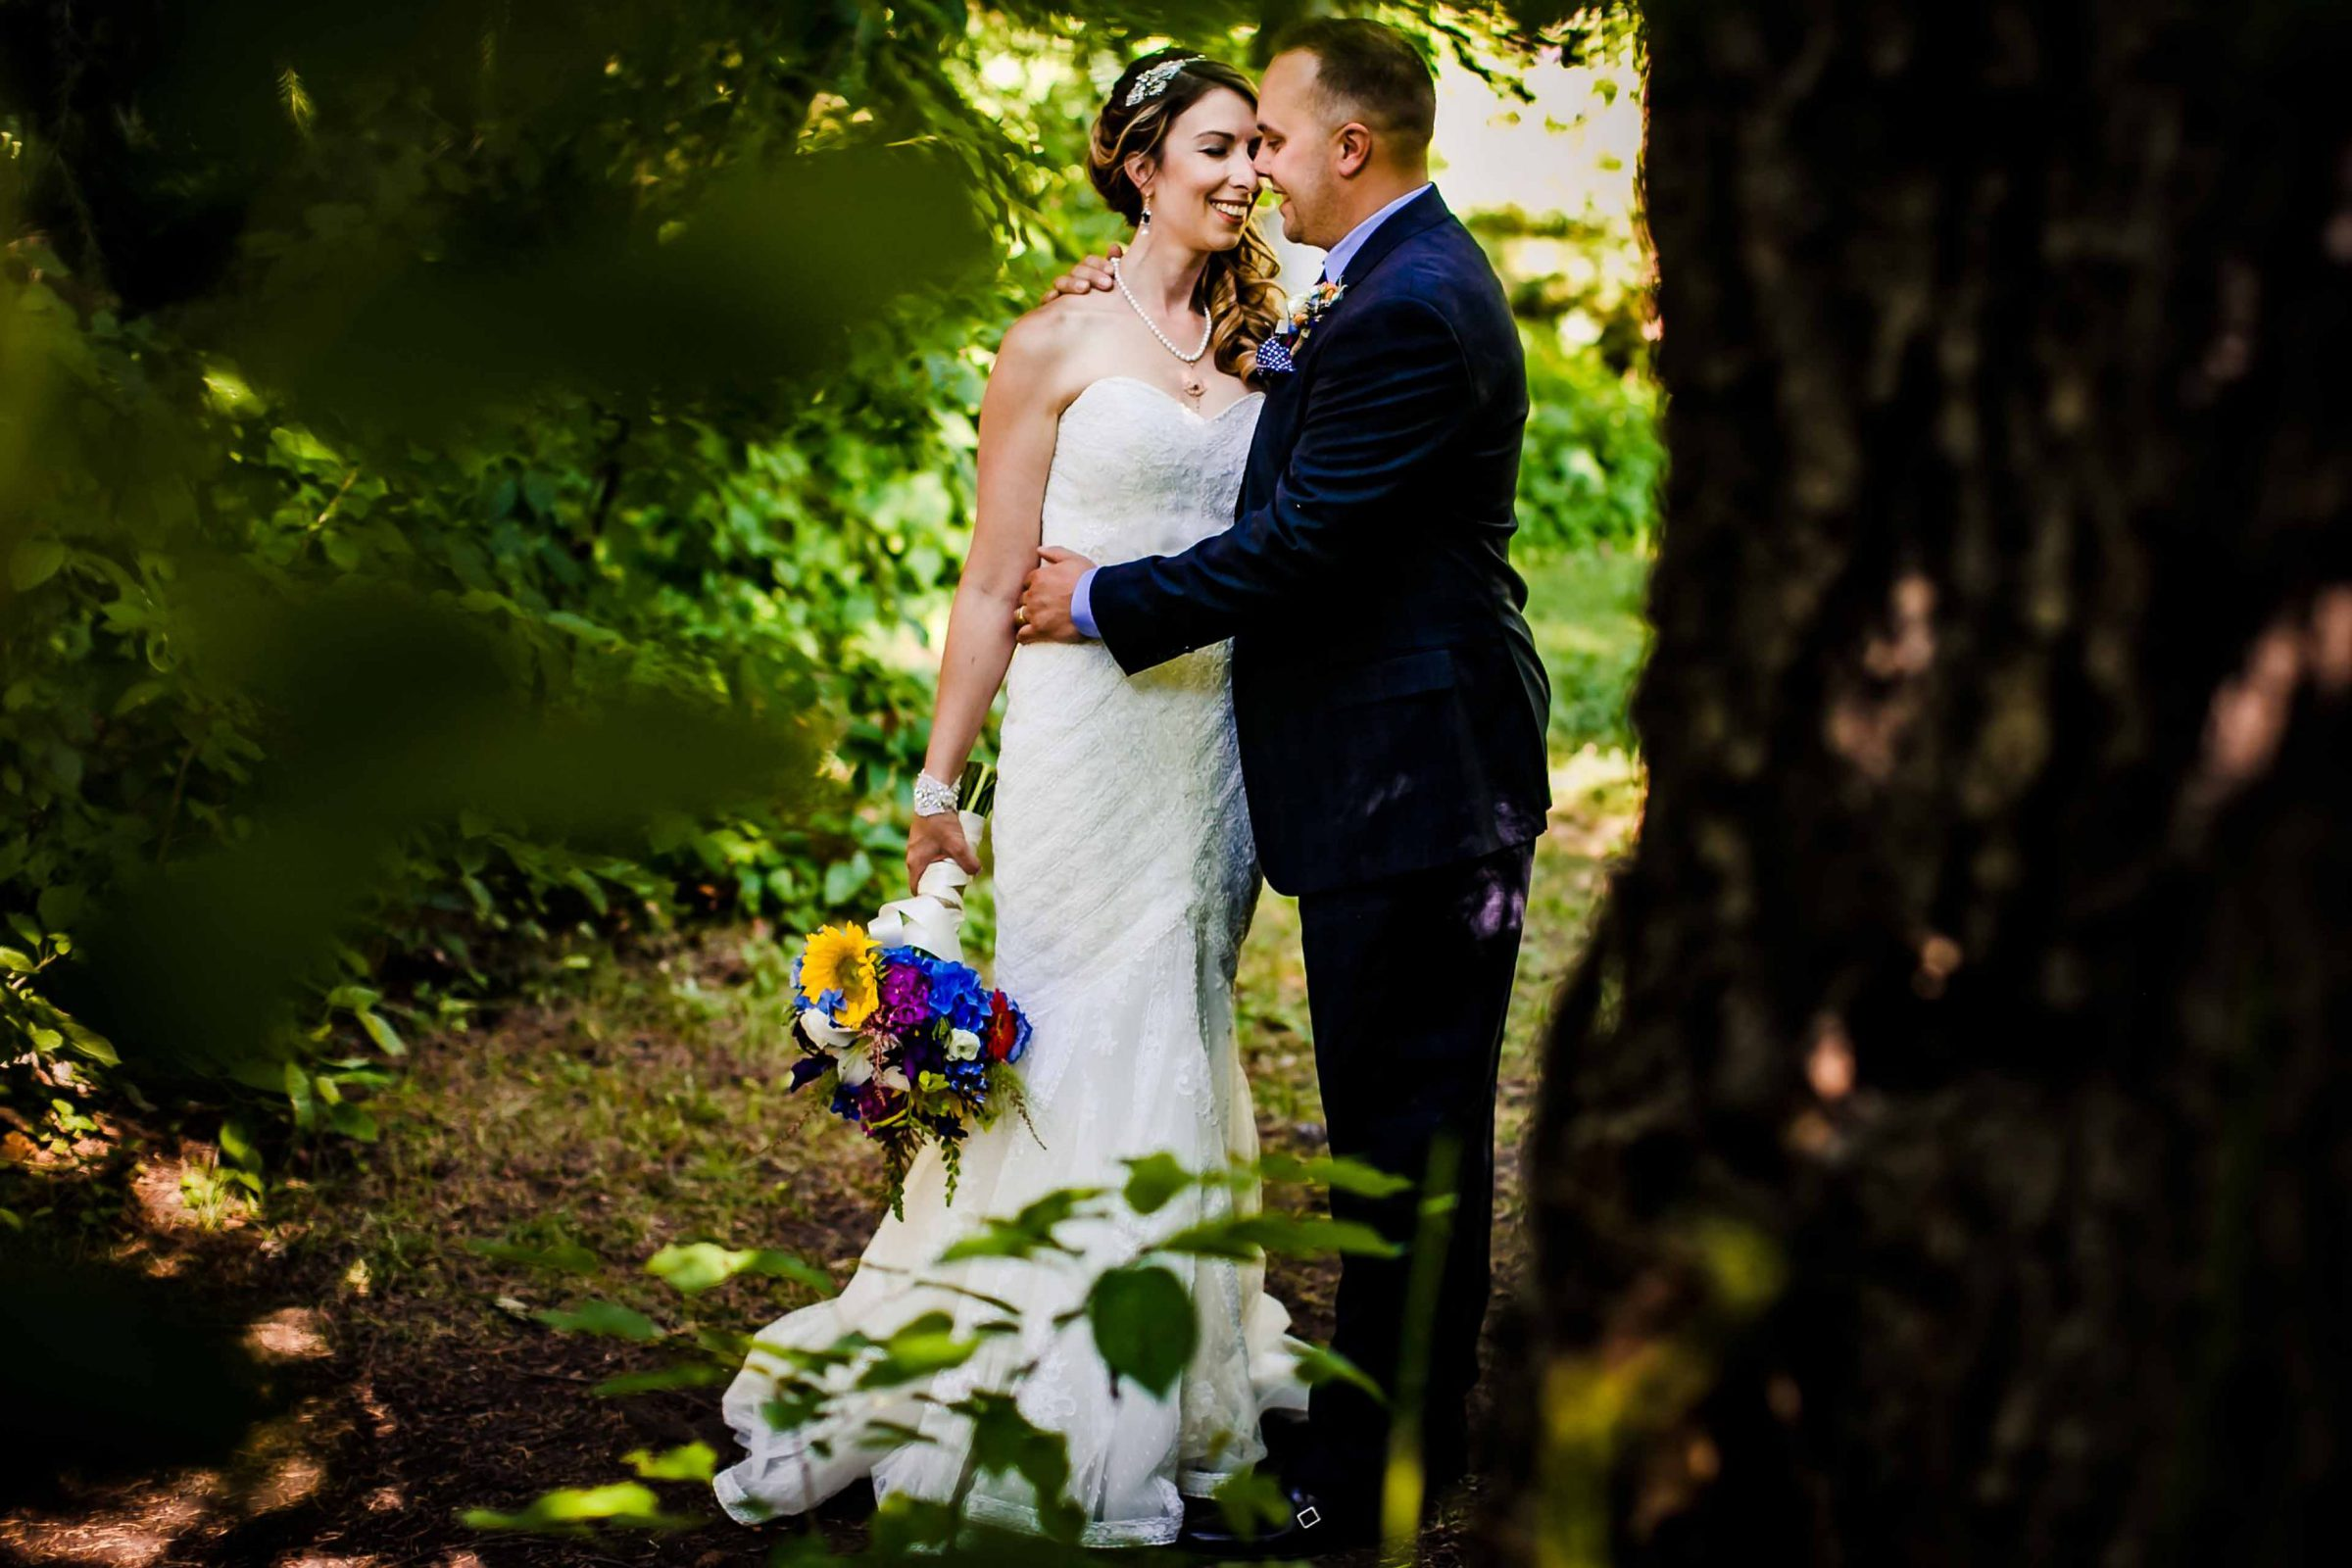 Intimate portrait of a bride and groom following their Mt Hood Organic Farms wedding ceremony